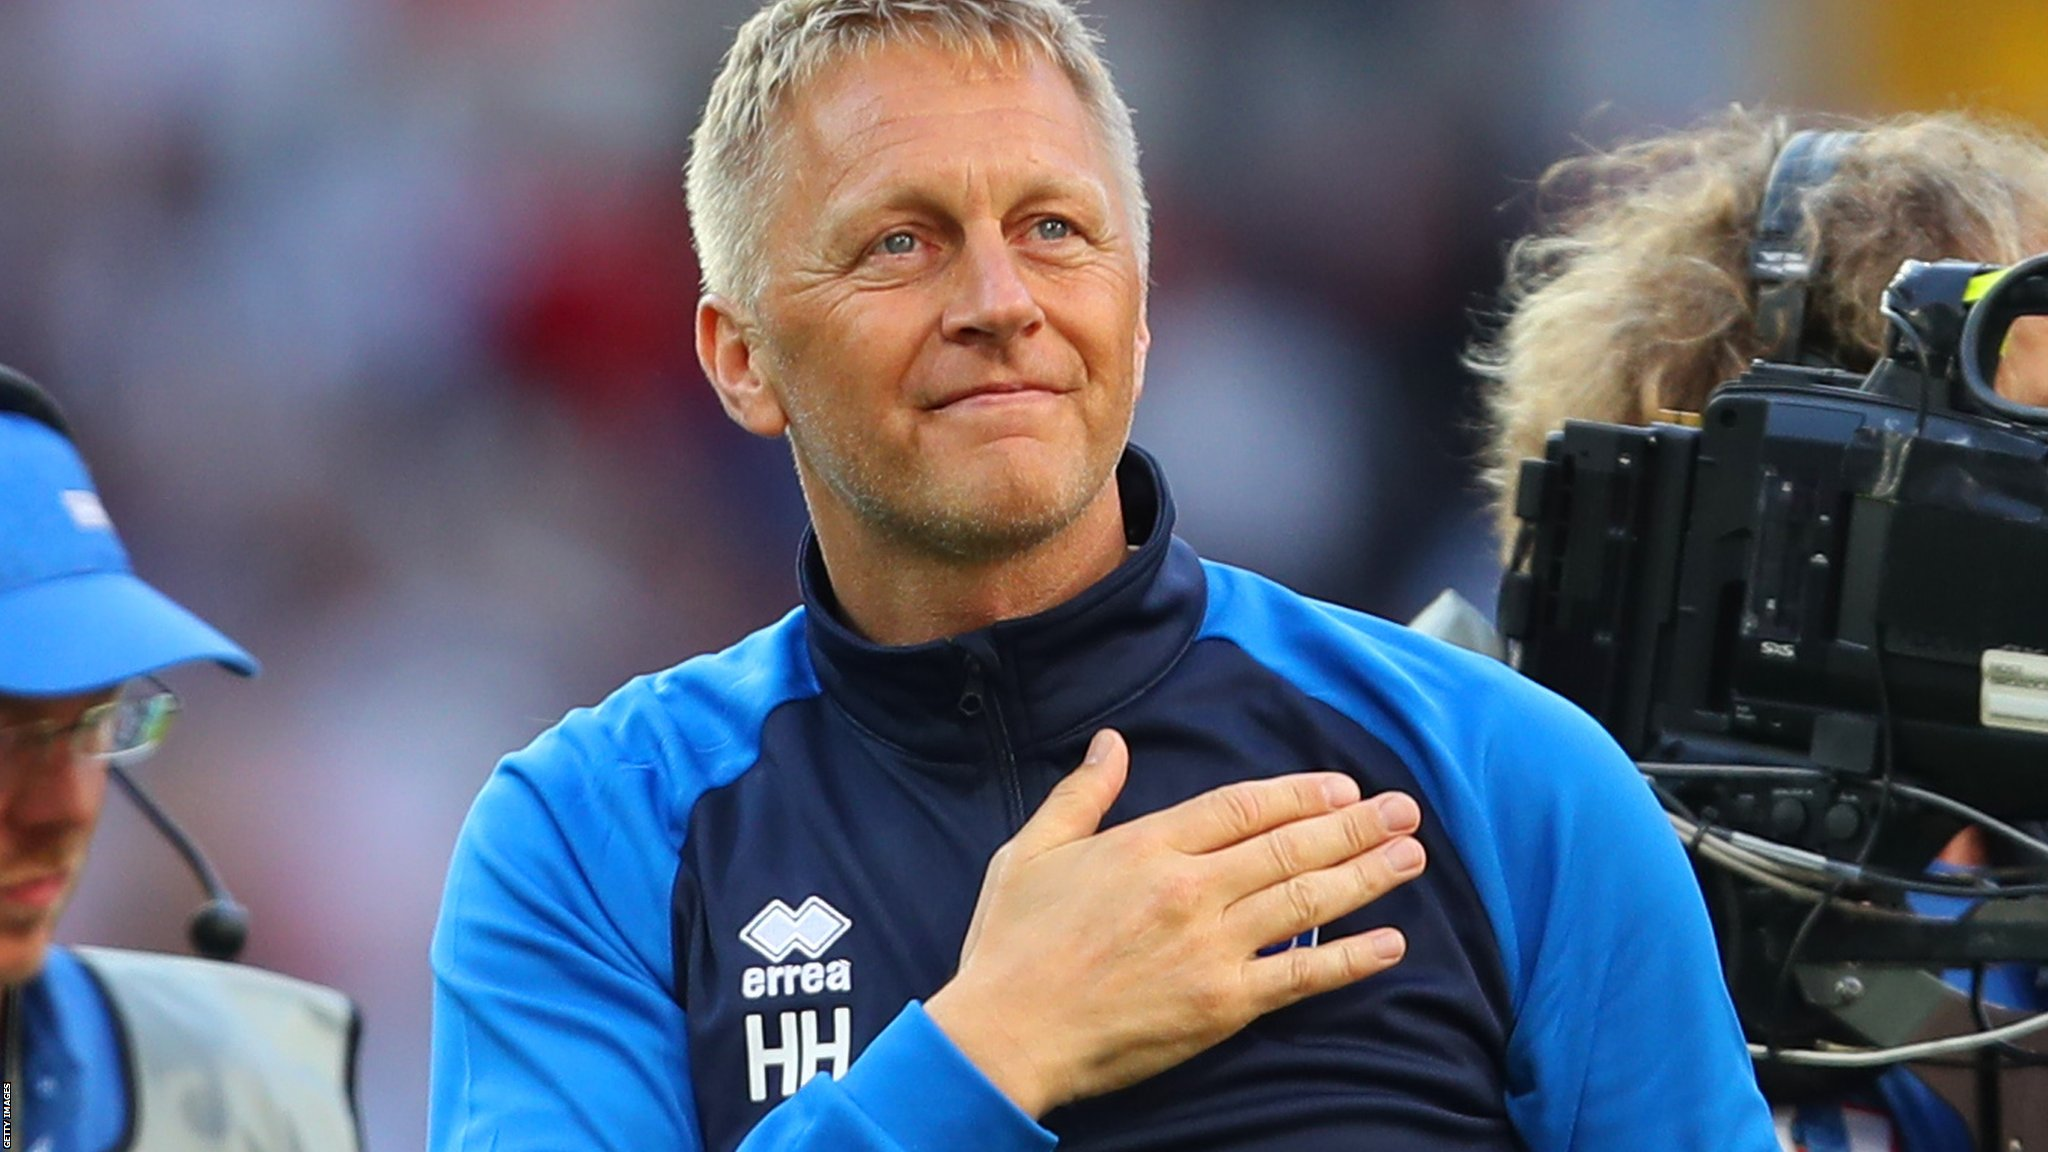 Iceland coach Heimir Hallgrimsson quits after country's first World Cup